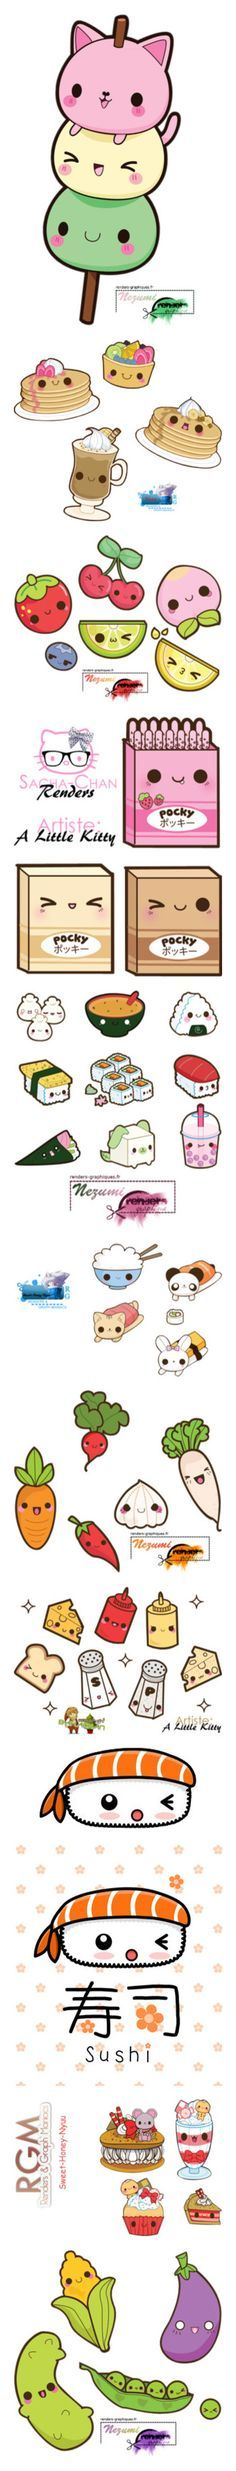 """""""KAWAII!!!!! X3"""" by demondog ❤ liked on Polyvore featuring fillers, anime, kawaii, doodle, backgrounds, food, animals, cartoon, effects and art"""